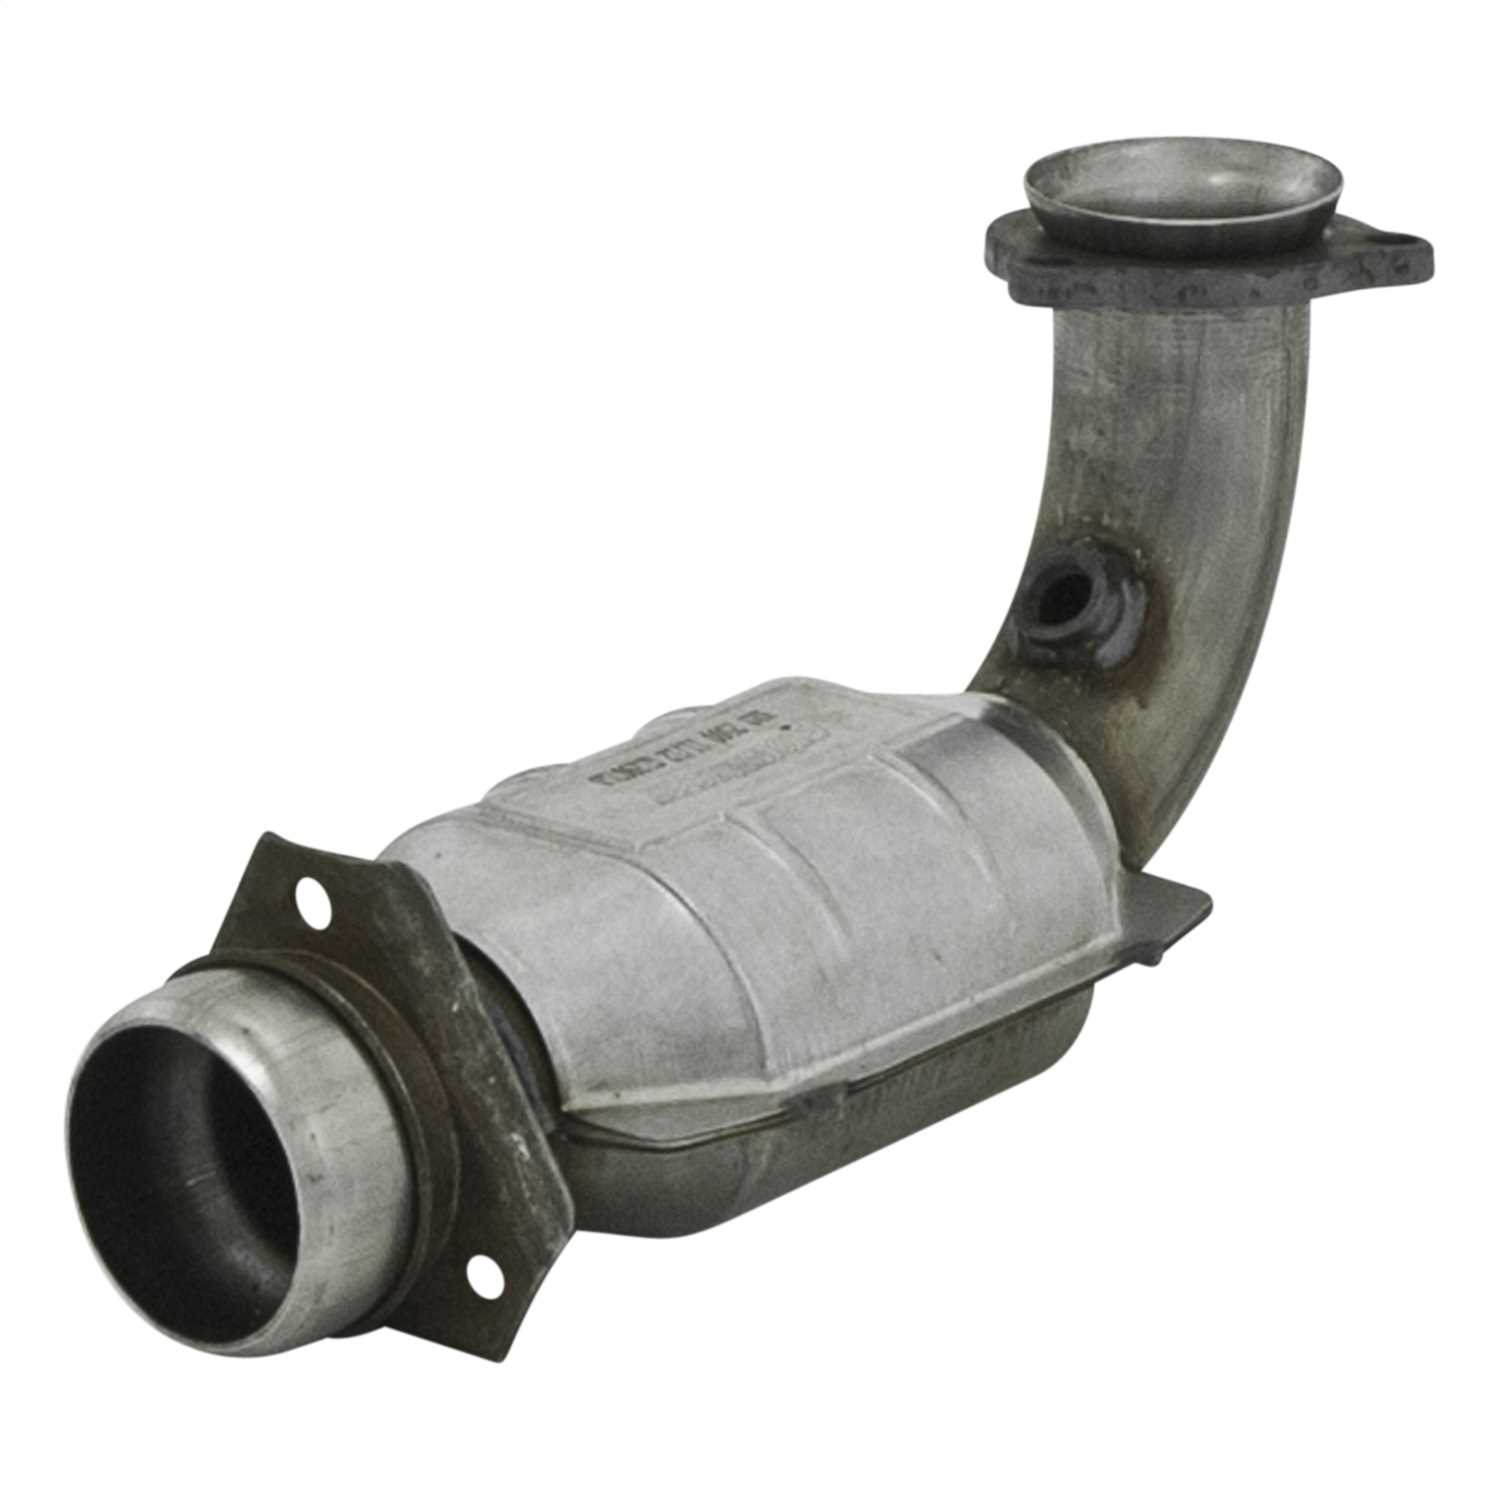 2010012 Flowmaster 49 State Catalytic Converters Direct Fit Catalytic Converter